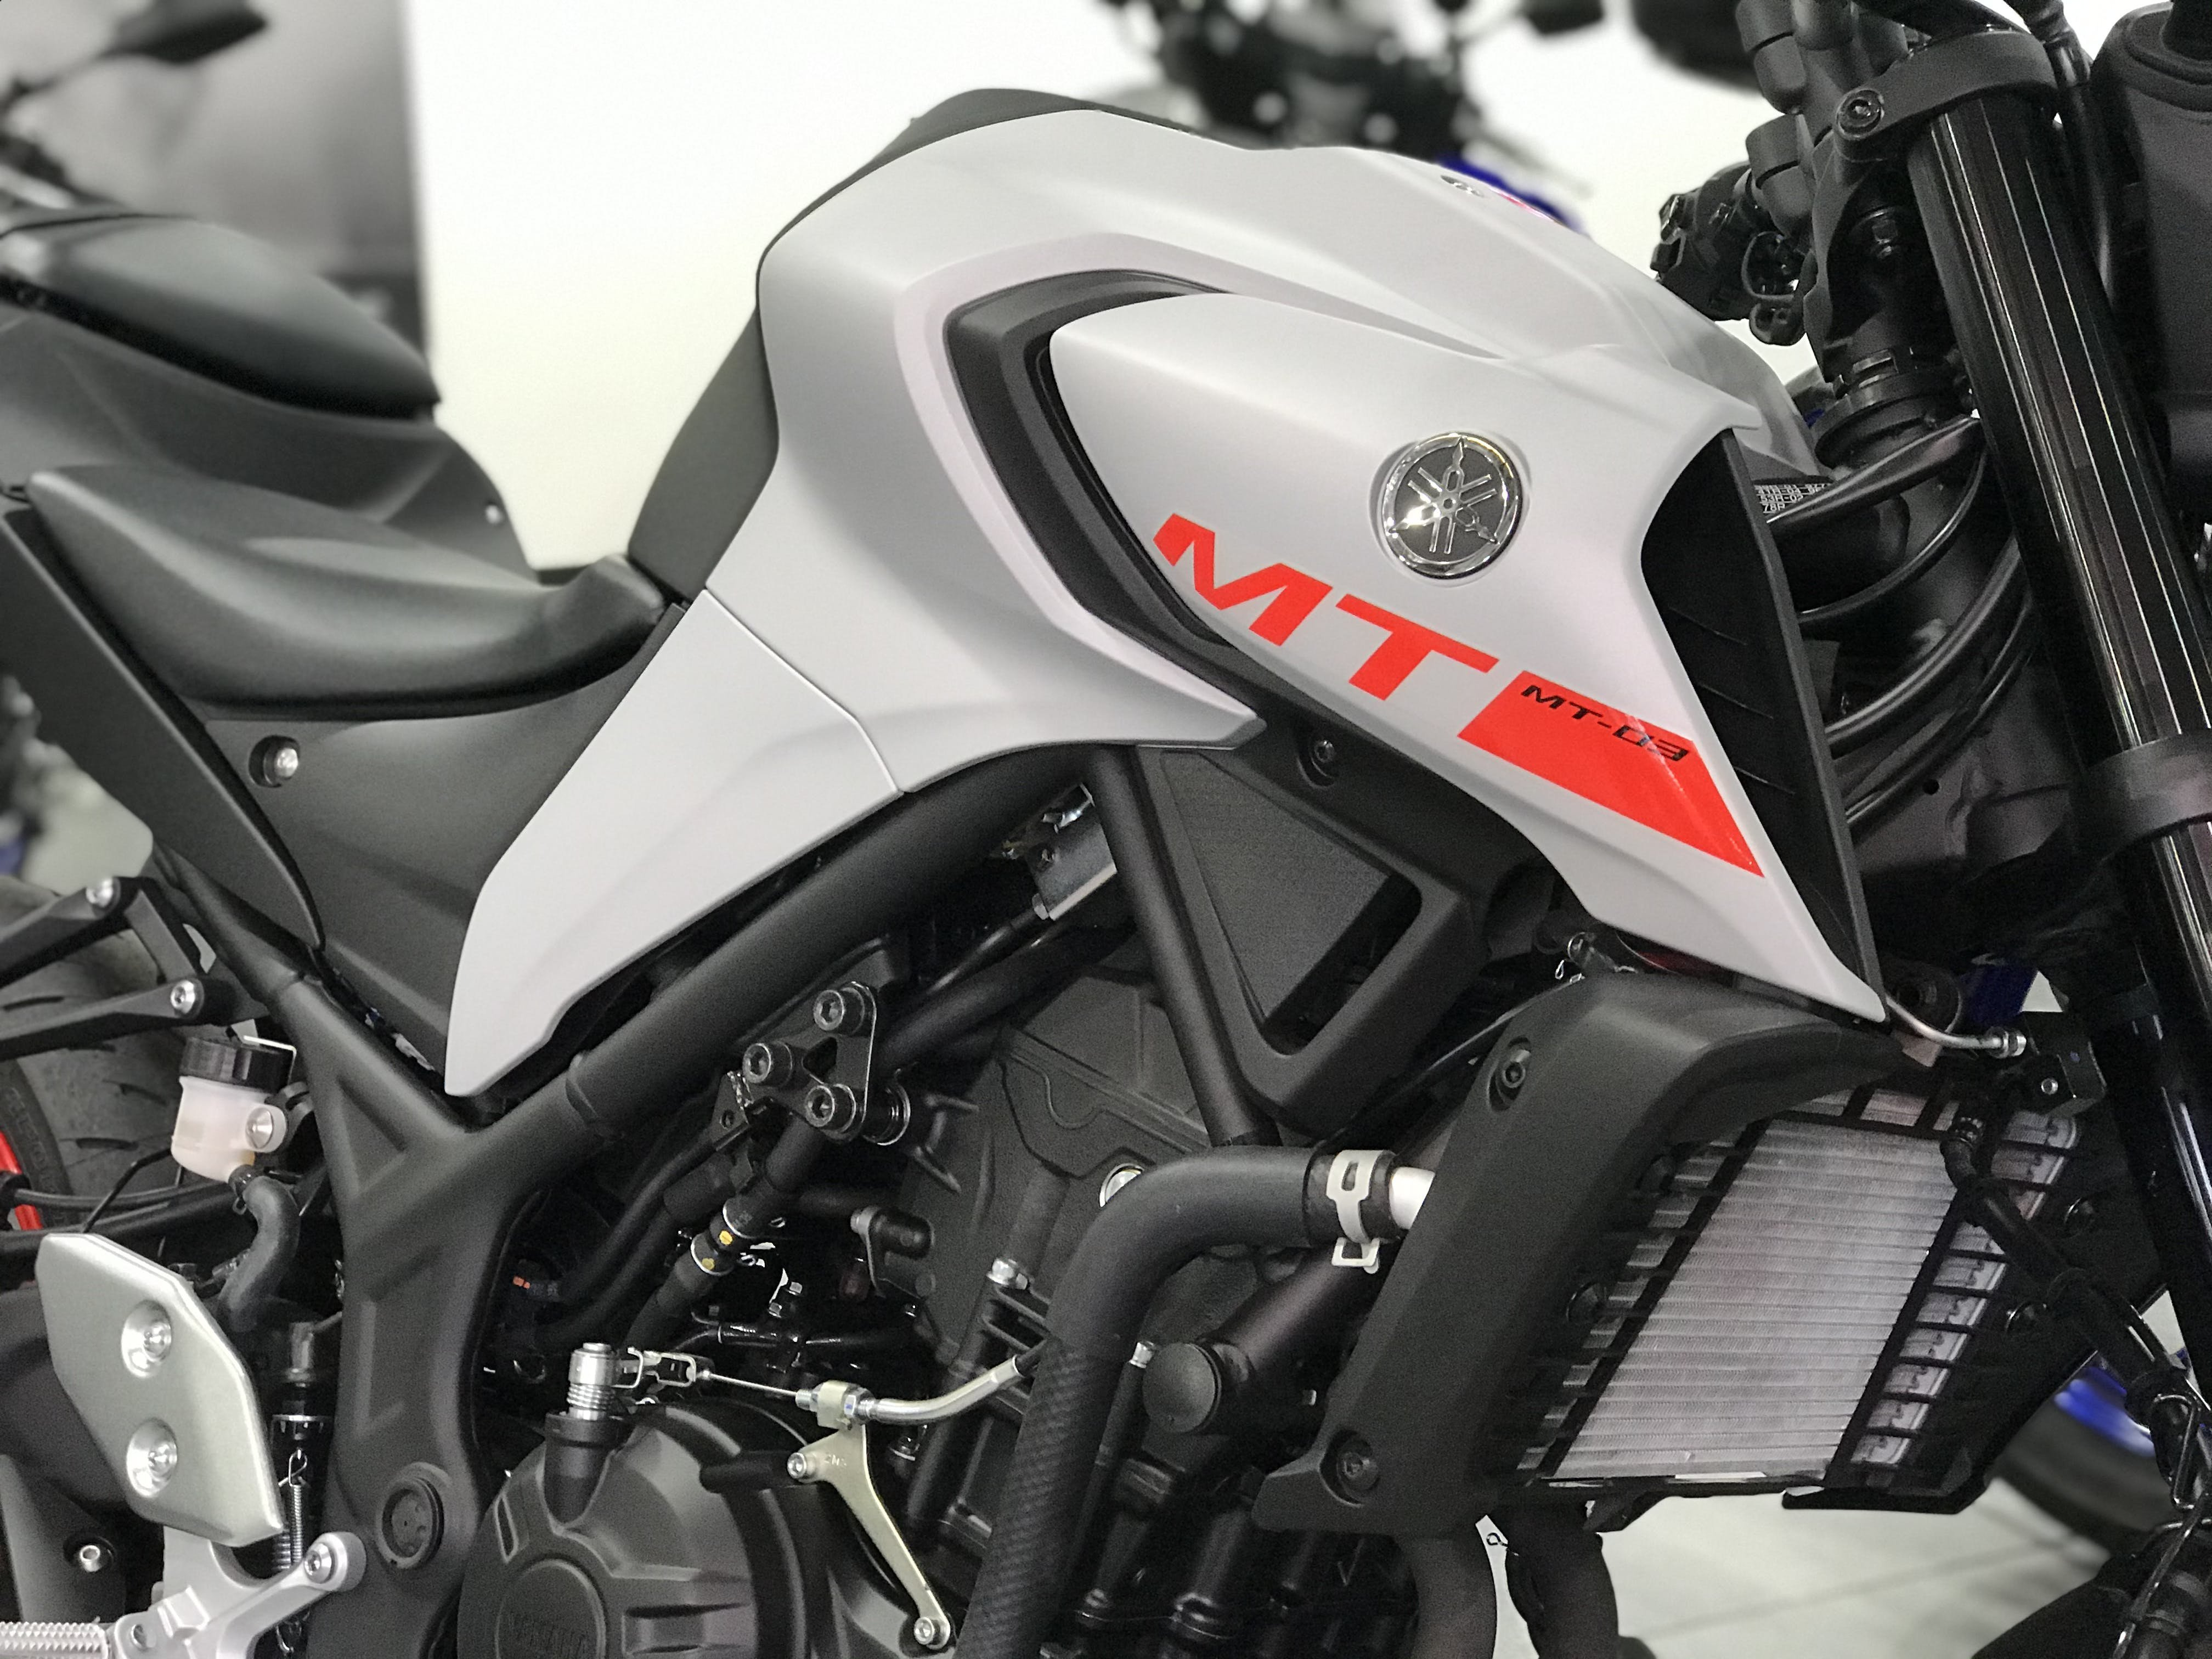 A close up of the Yamaha MT-03 tank in Grey